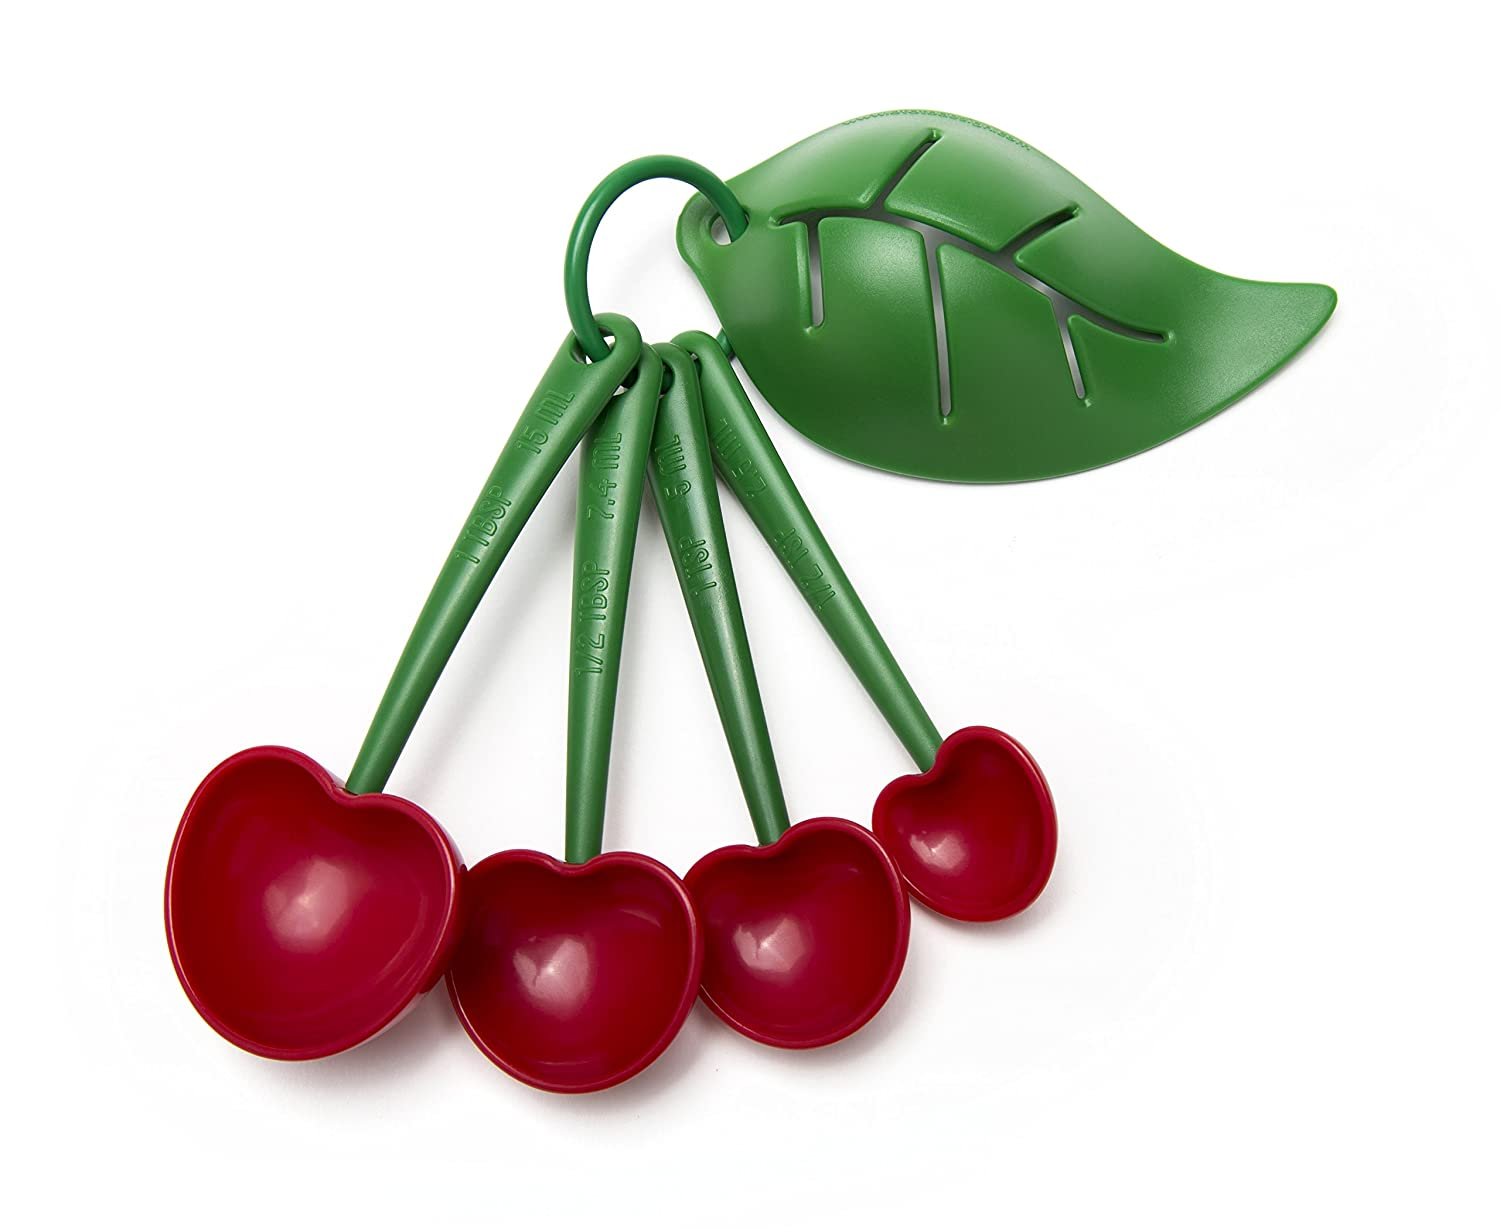 Cherry Measuring Spoons and Egg Separator